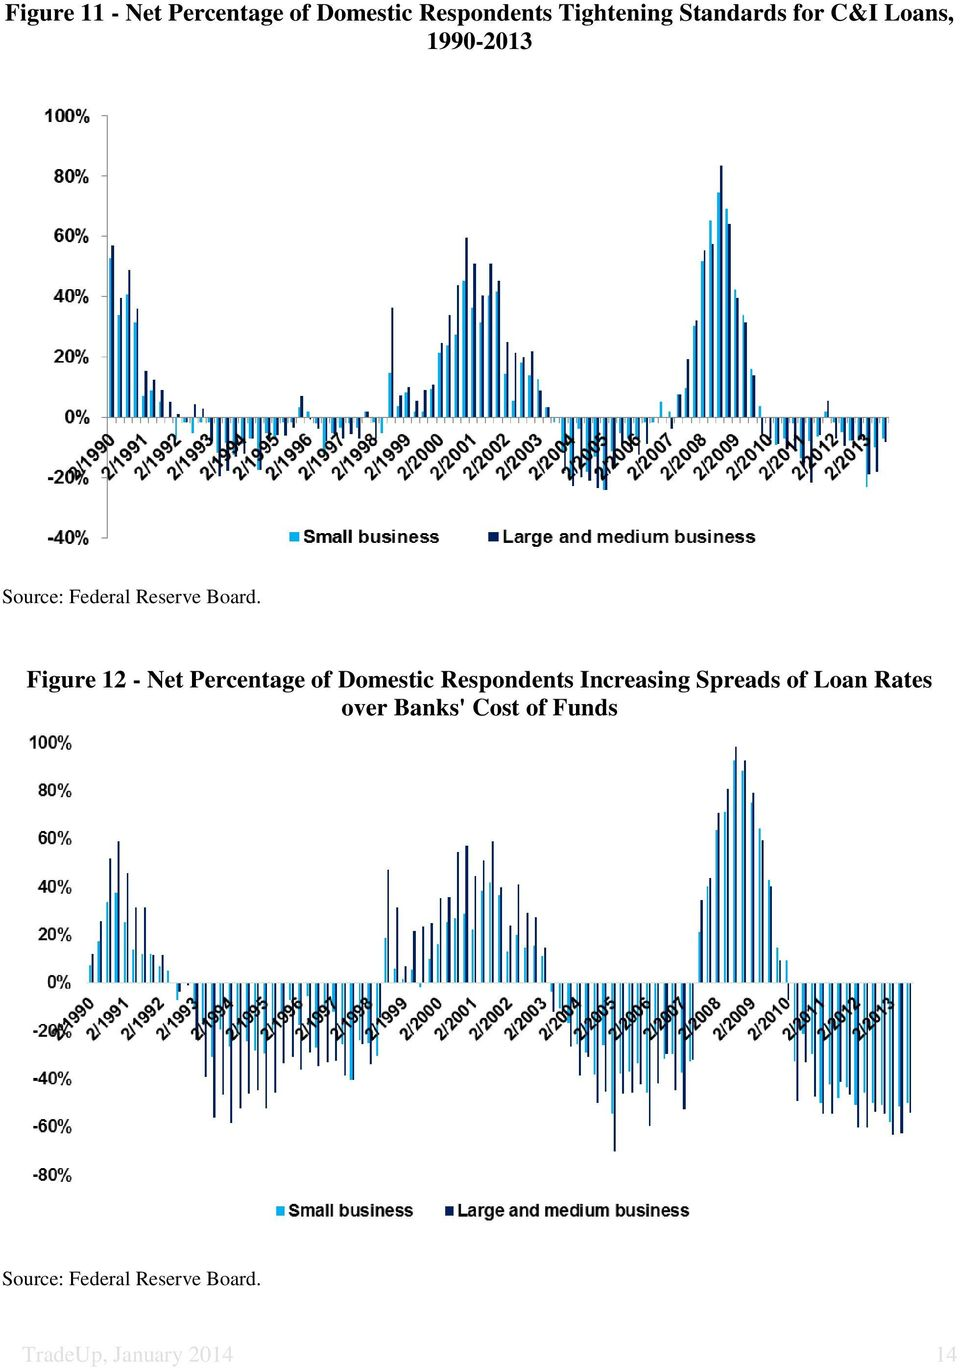 Figure 12 - Net Percentage of Domestic Respondents Increasing Spreads of